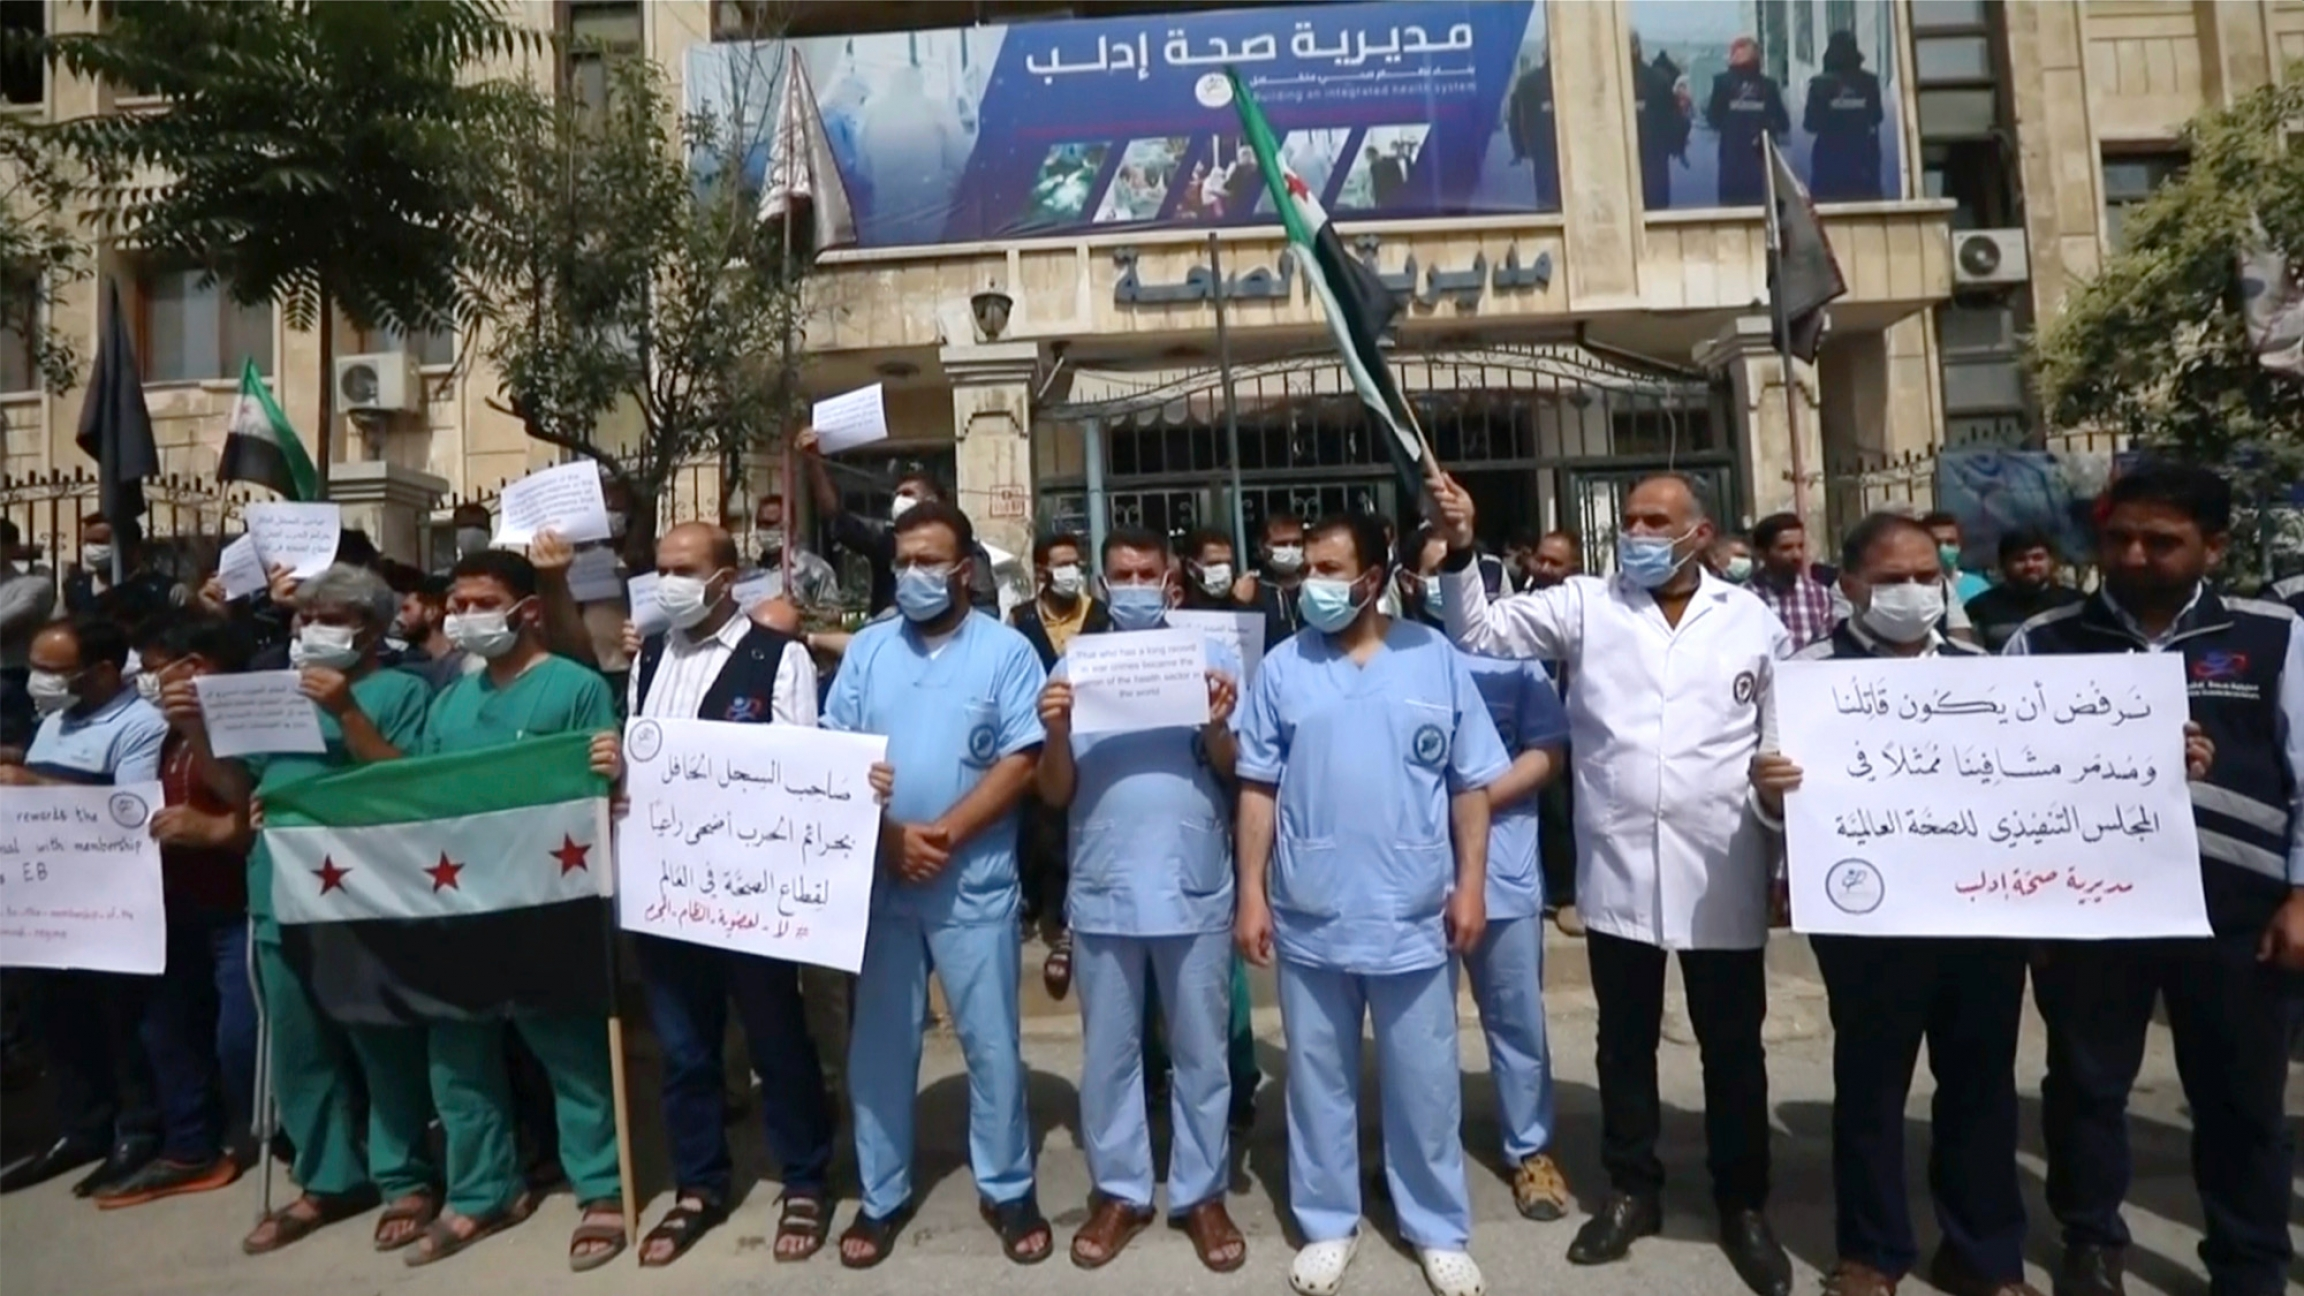 In this image taken from video, dozens of medical workers protest a decision to grant Syrian President Bashar al-Assad's government a seat on the executive board of the World Health Organization, May 31, 2021, in Idlib, Syria.